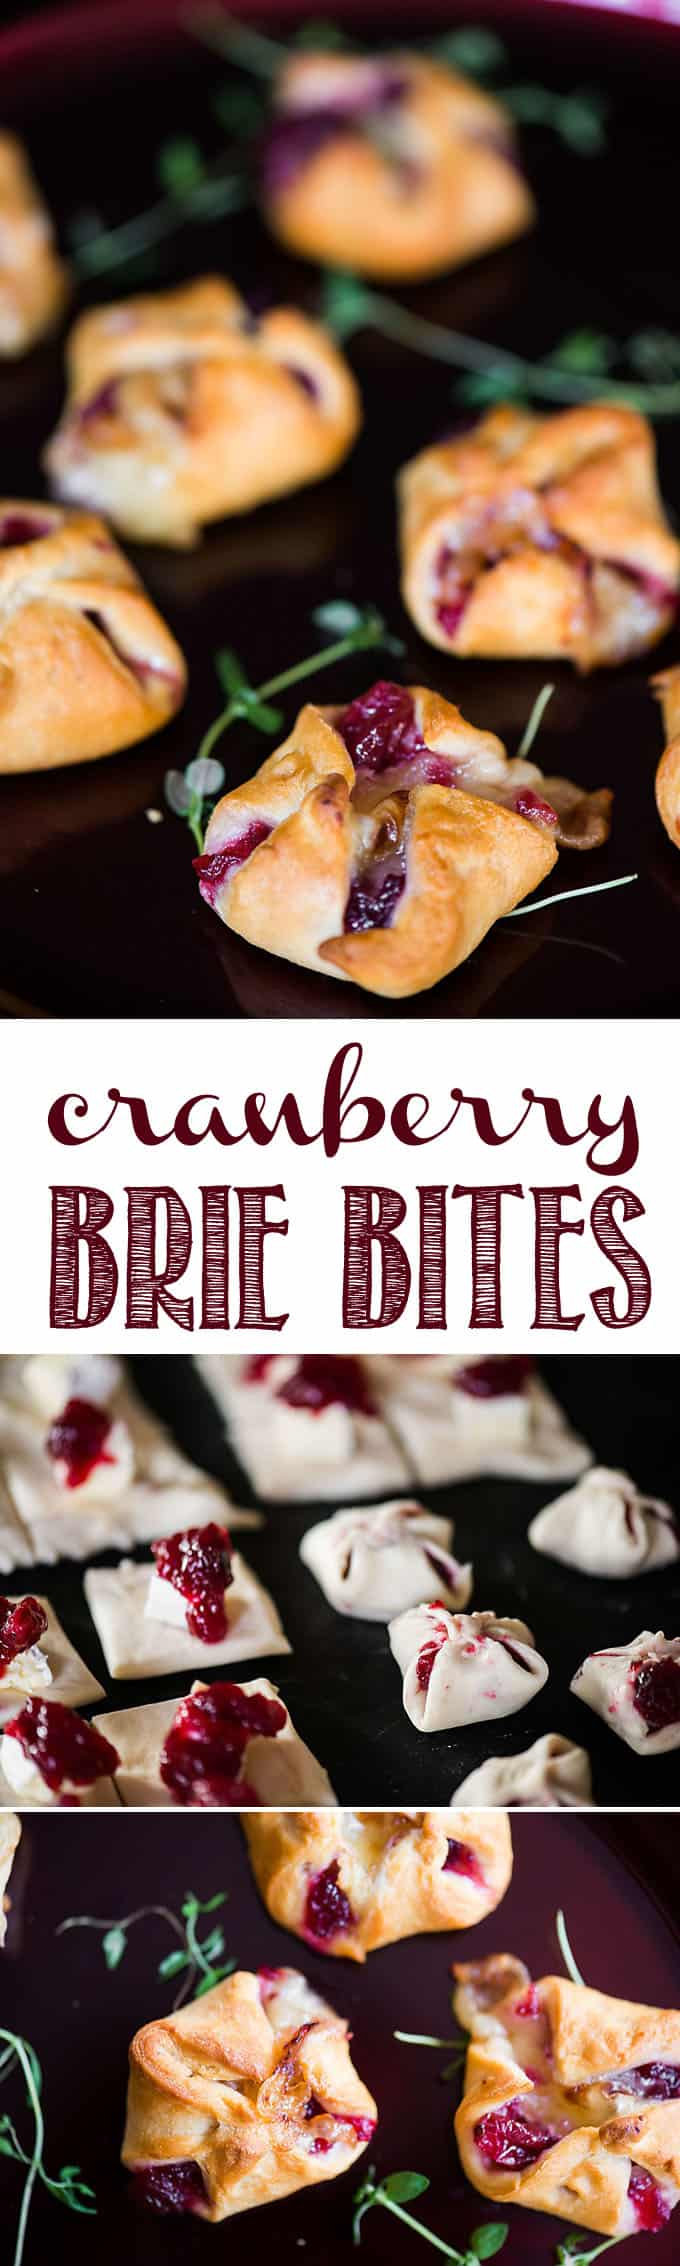 Cranberry Brie Bites are an easy three ingredient appetizer that are perfect for holiday parties. Warm and delicious - everyone will love them! #cranberrybrie #holidayentertaining #appetizer